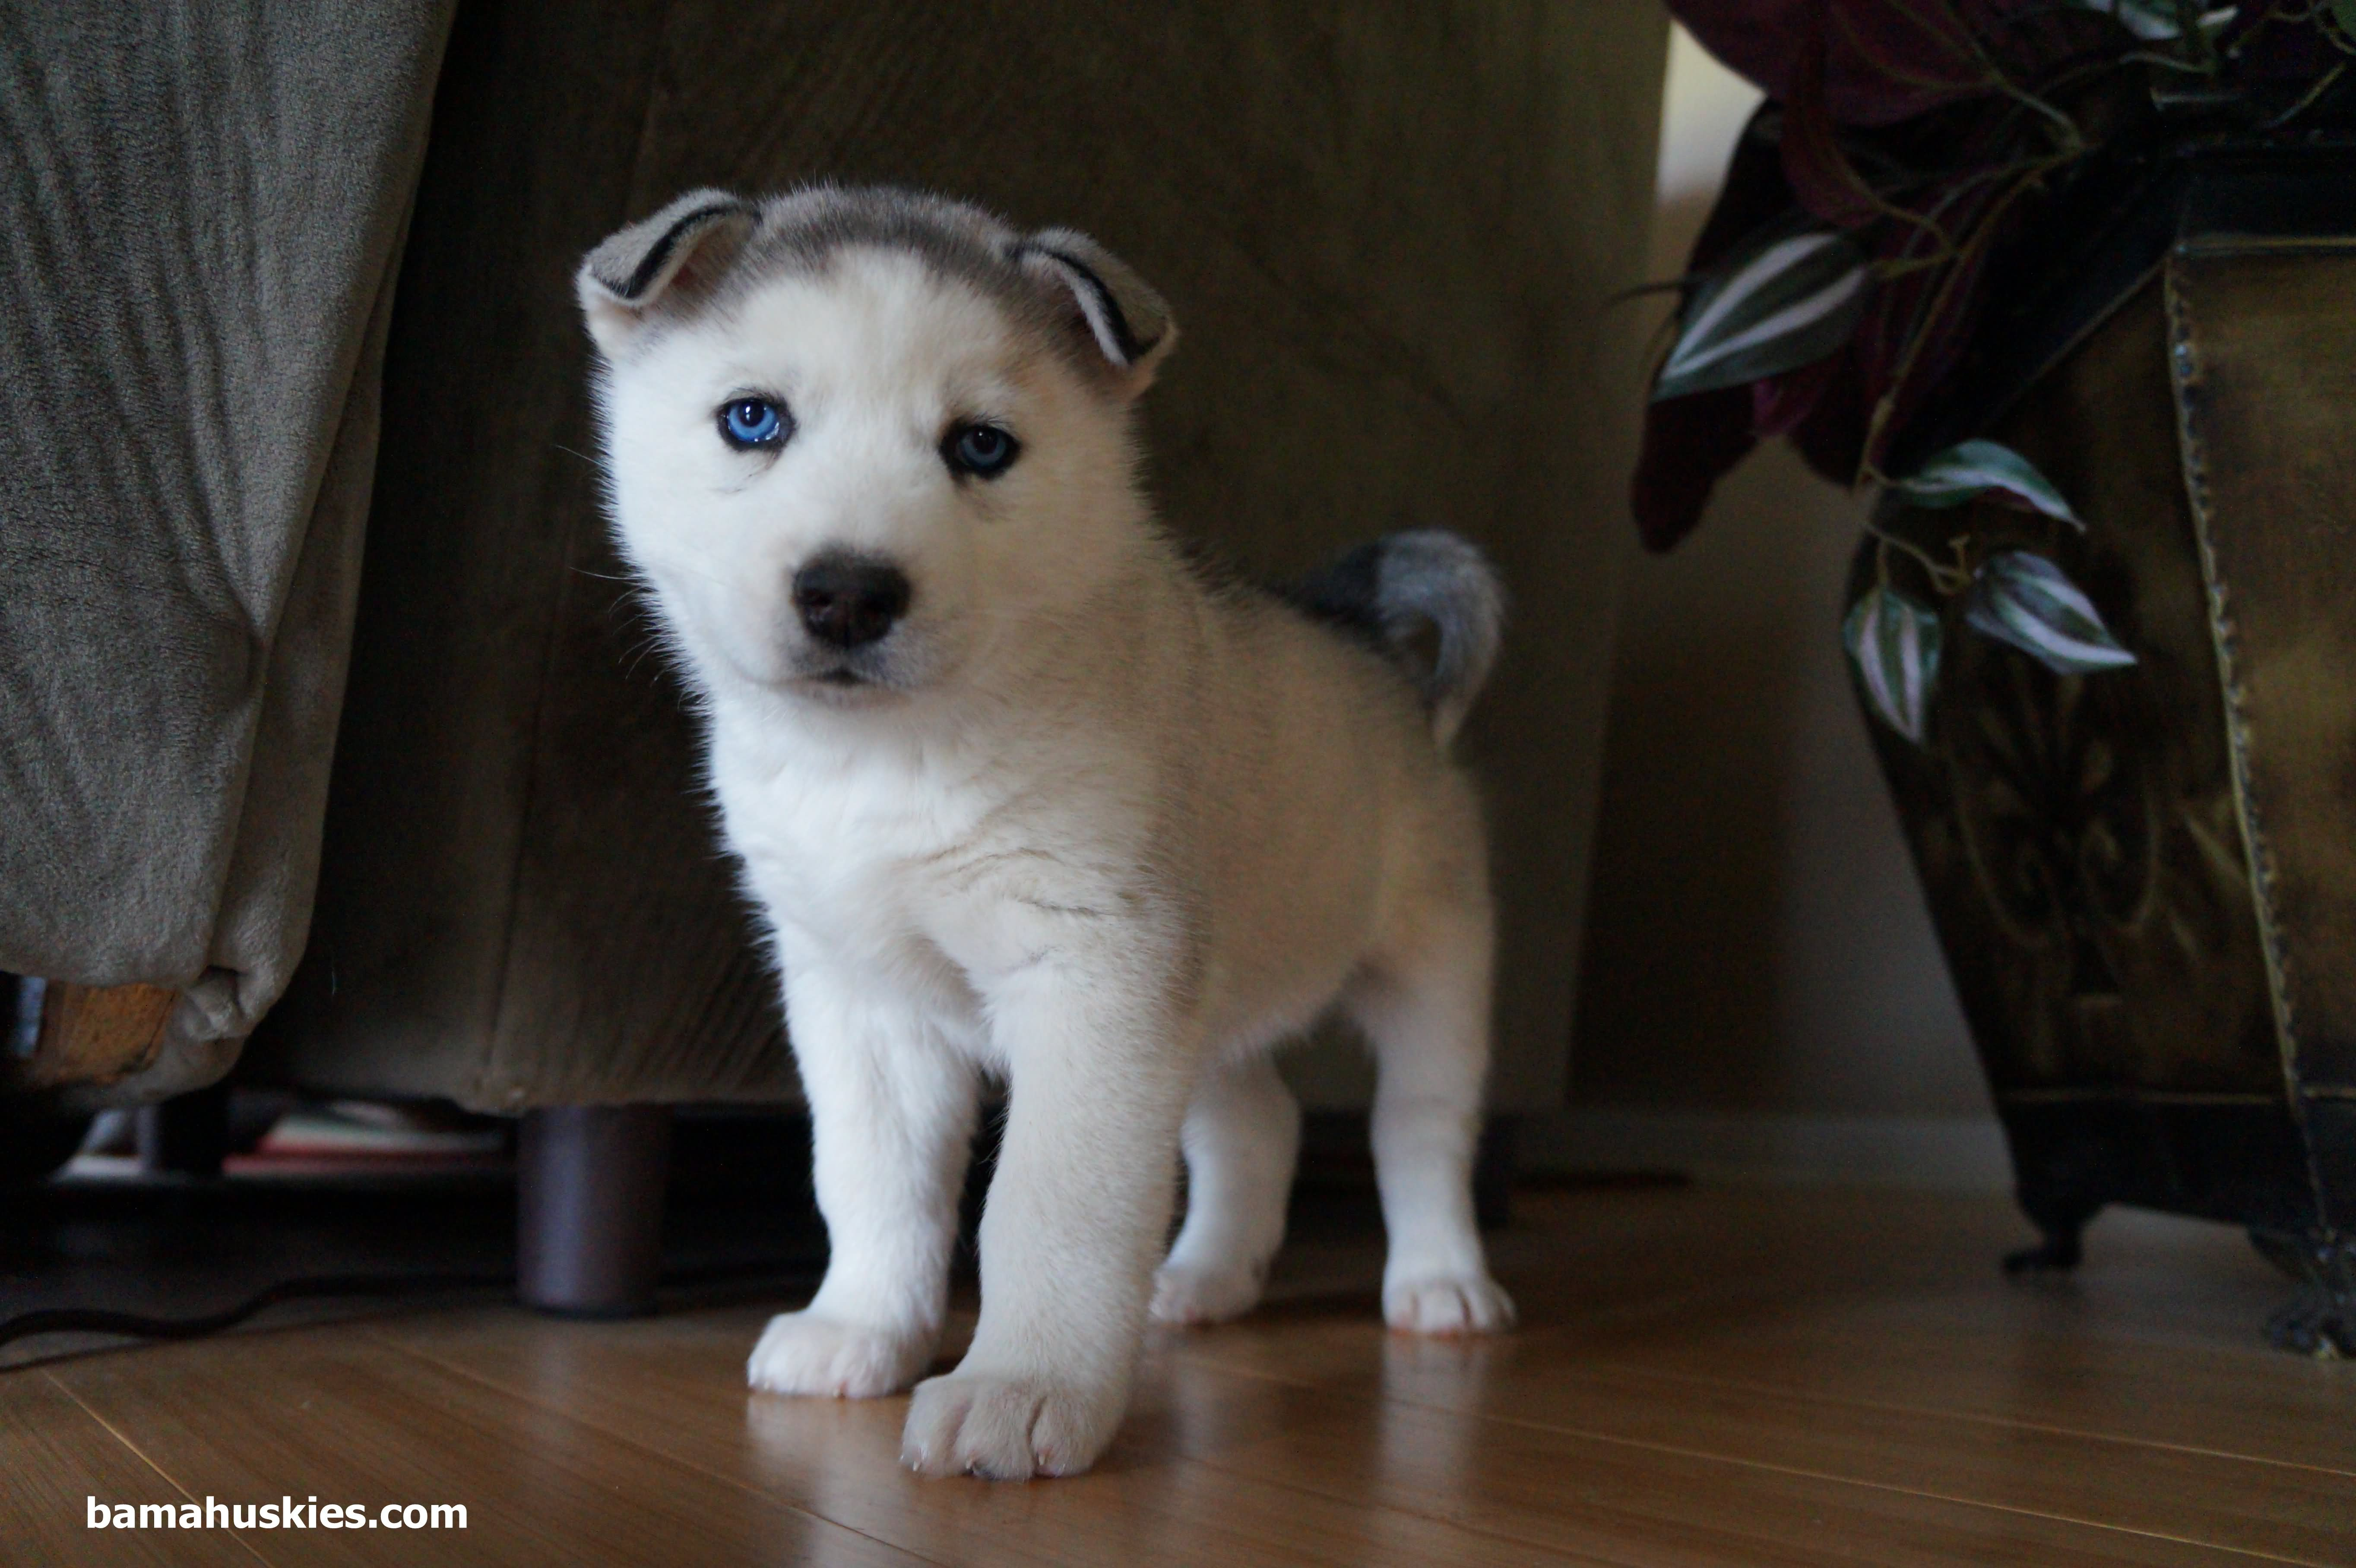 Cute Husky Puppies With Blue Eyes Wallpaper 65 Very Cute Siberian Husky Puppy Pictures And Images